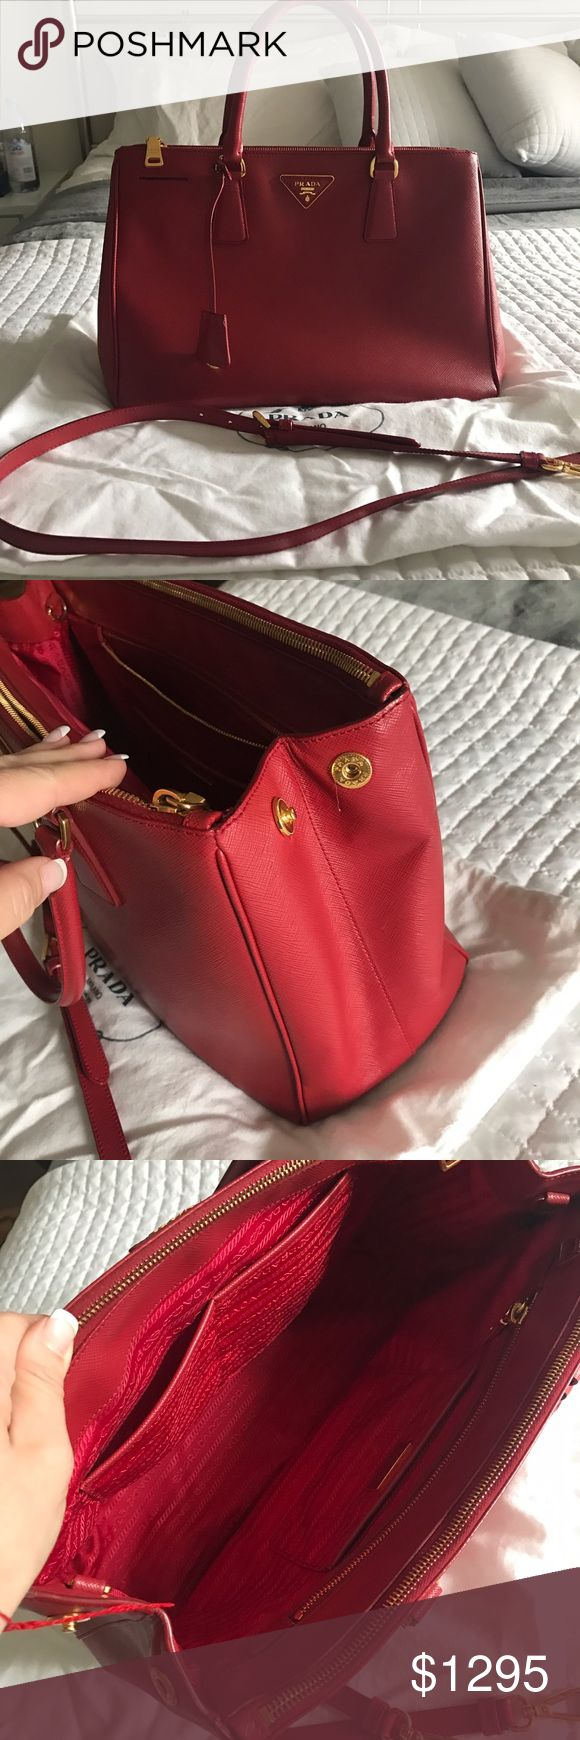 Authentic Prada Saffiano Double Zip Handbag Red Authentic. Self bought.  Comes with strap and dust bag.  Very good condition.  Used rarely and owned since 2013. Classic style. Still in store for $2700 Prada Bags Totes